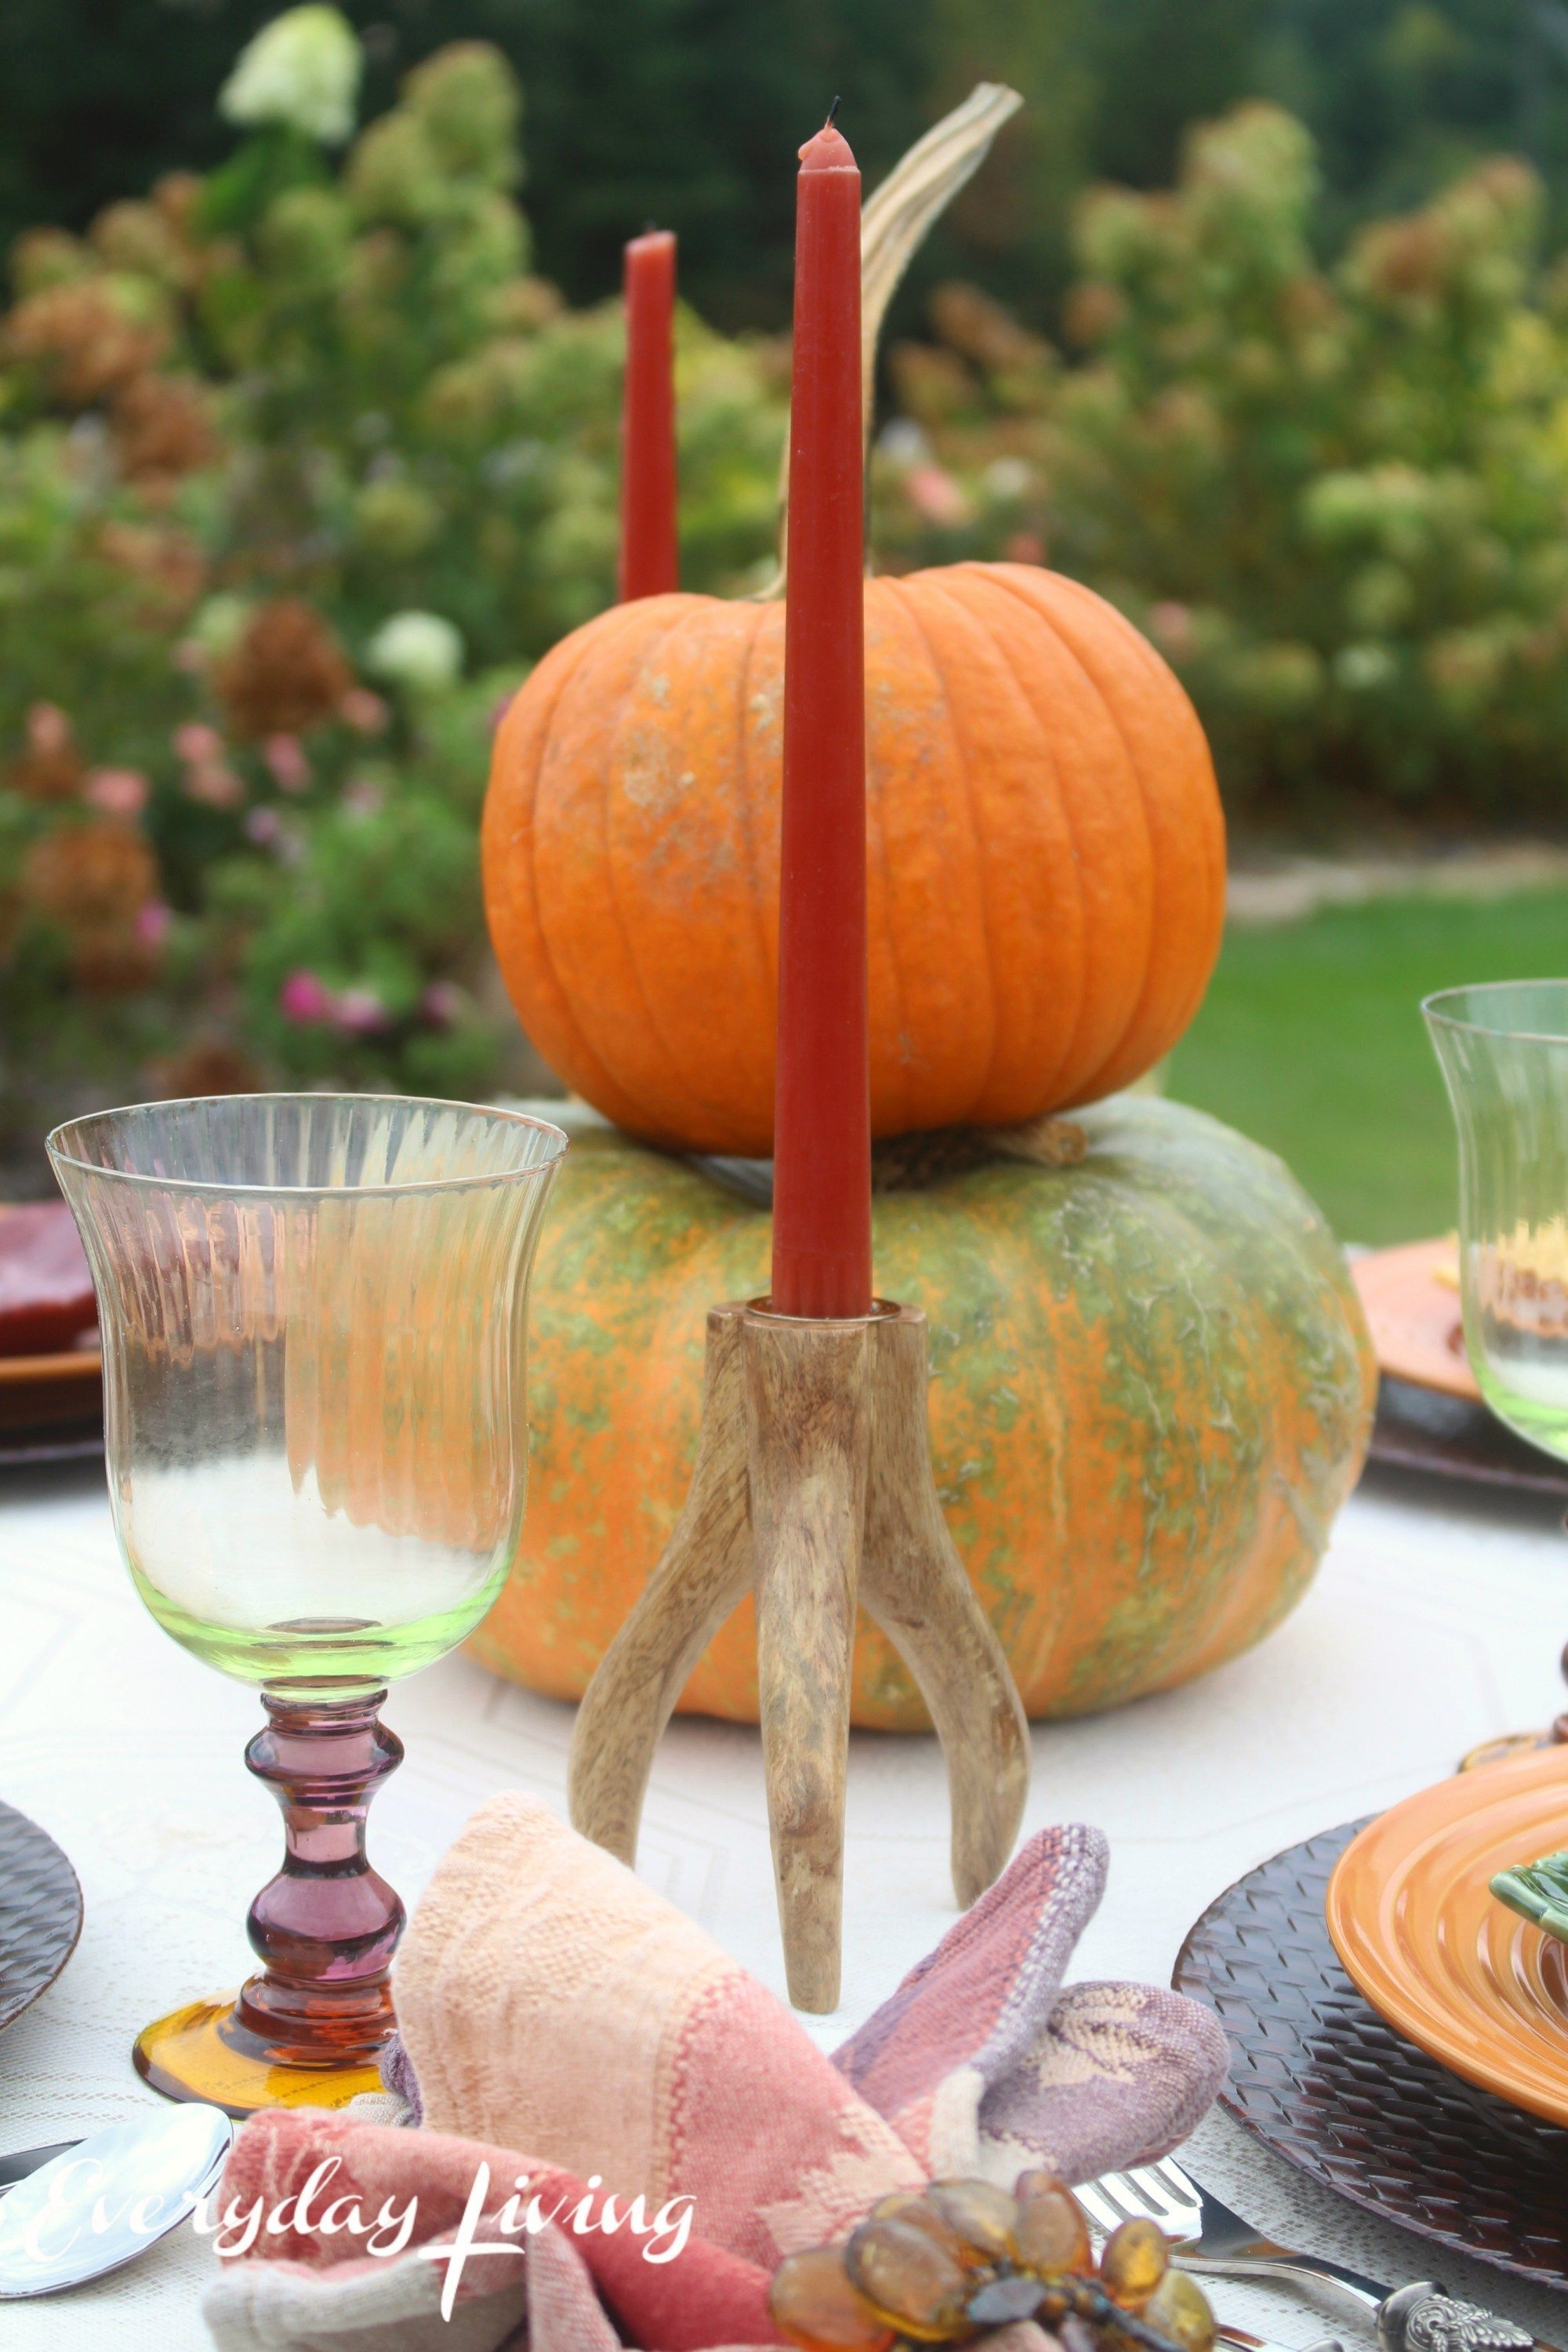 5 Ideas For Your Autumn Tables